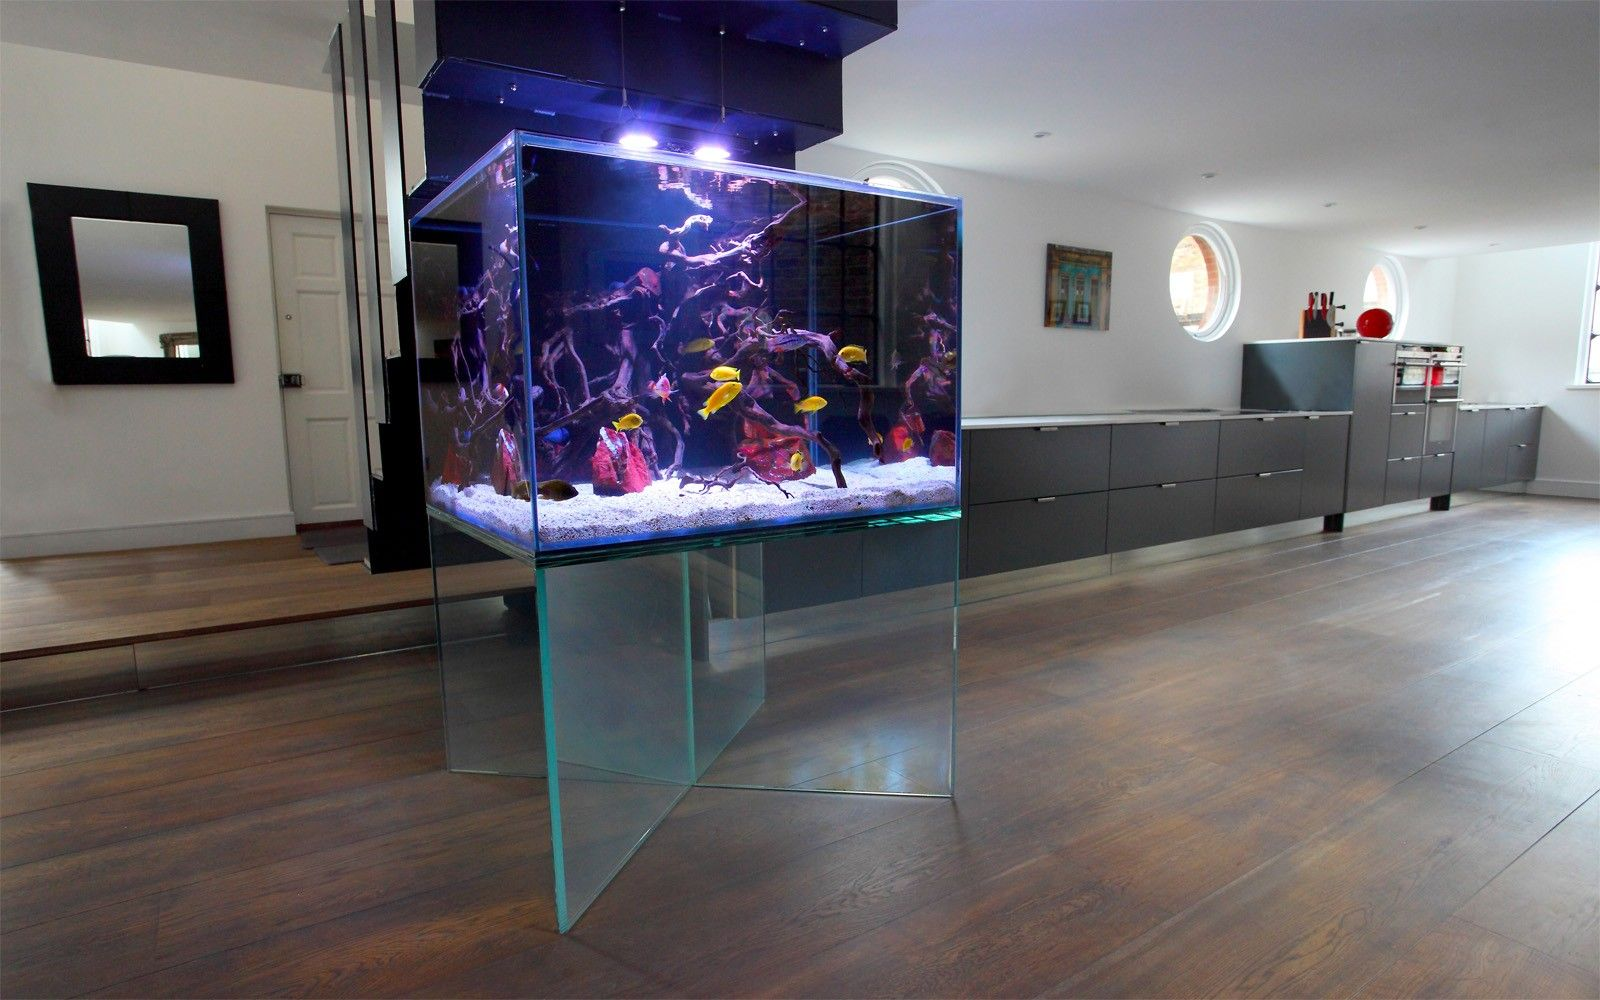 Meerwasseraquarium Im Wohnzimmer Luxury Aquariums Luxury Townhouse Aquarium Aquarium